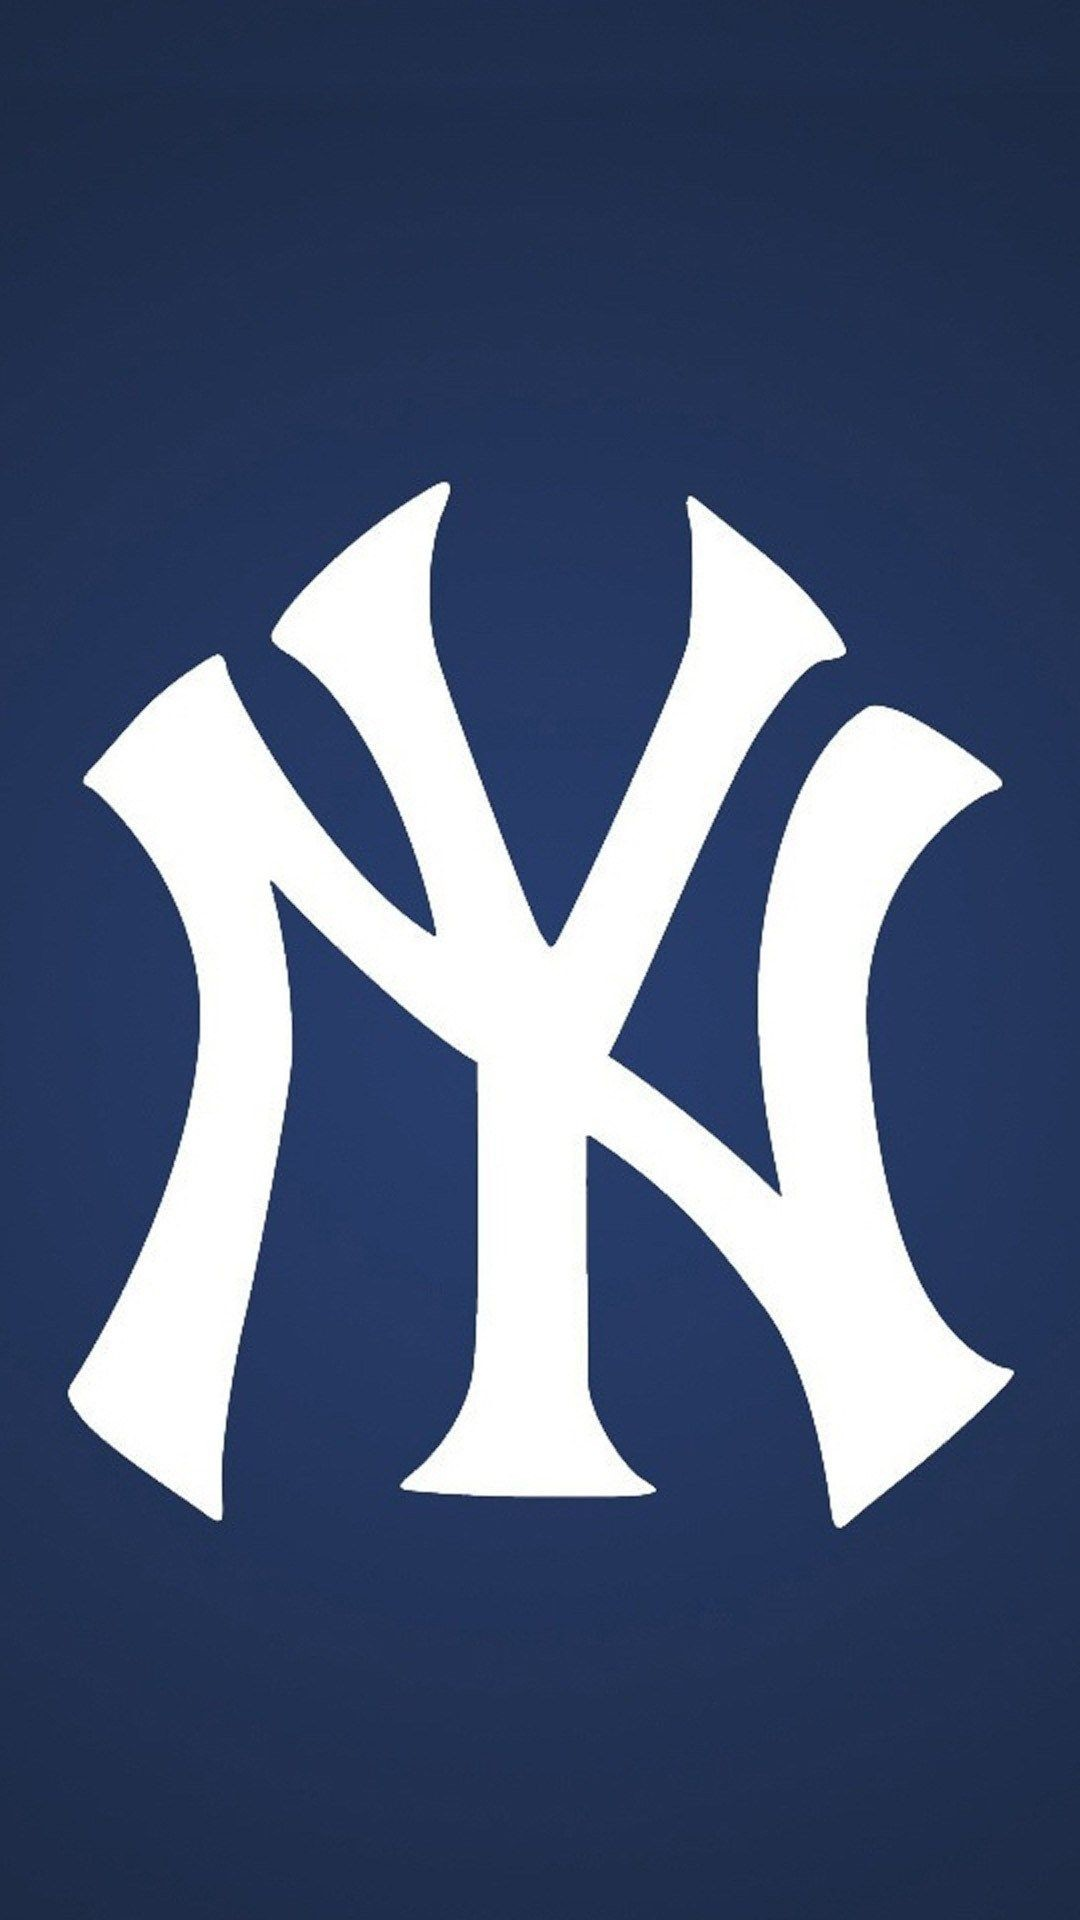 Res: 1080x1920, New York Yankees Wallpaper iPhone - Beautiful New York Yankees Wallpaper  iPhone, Ny Yankees Logo